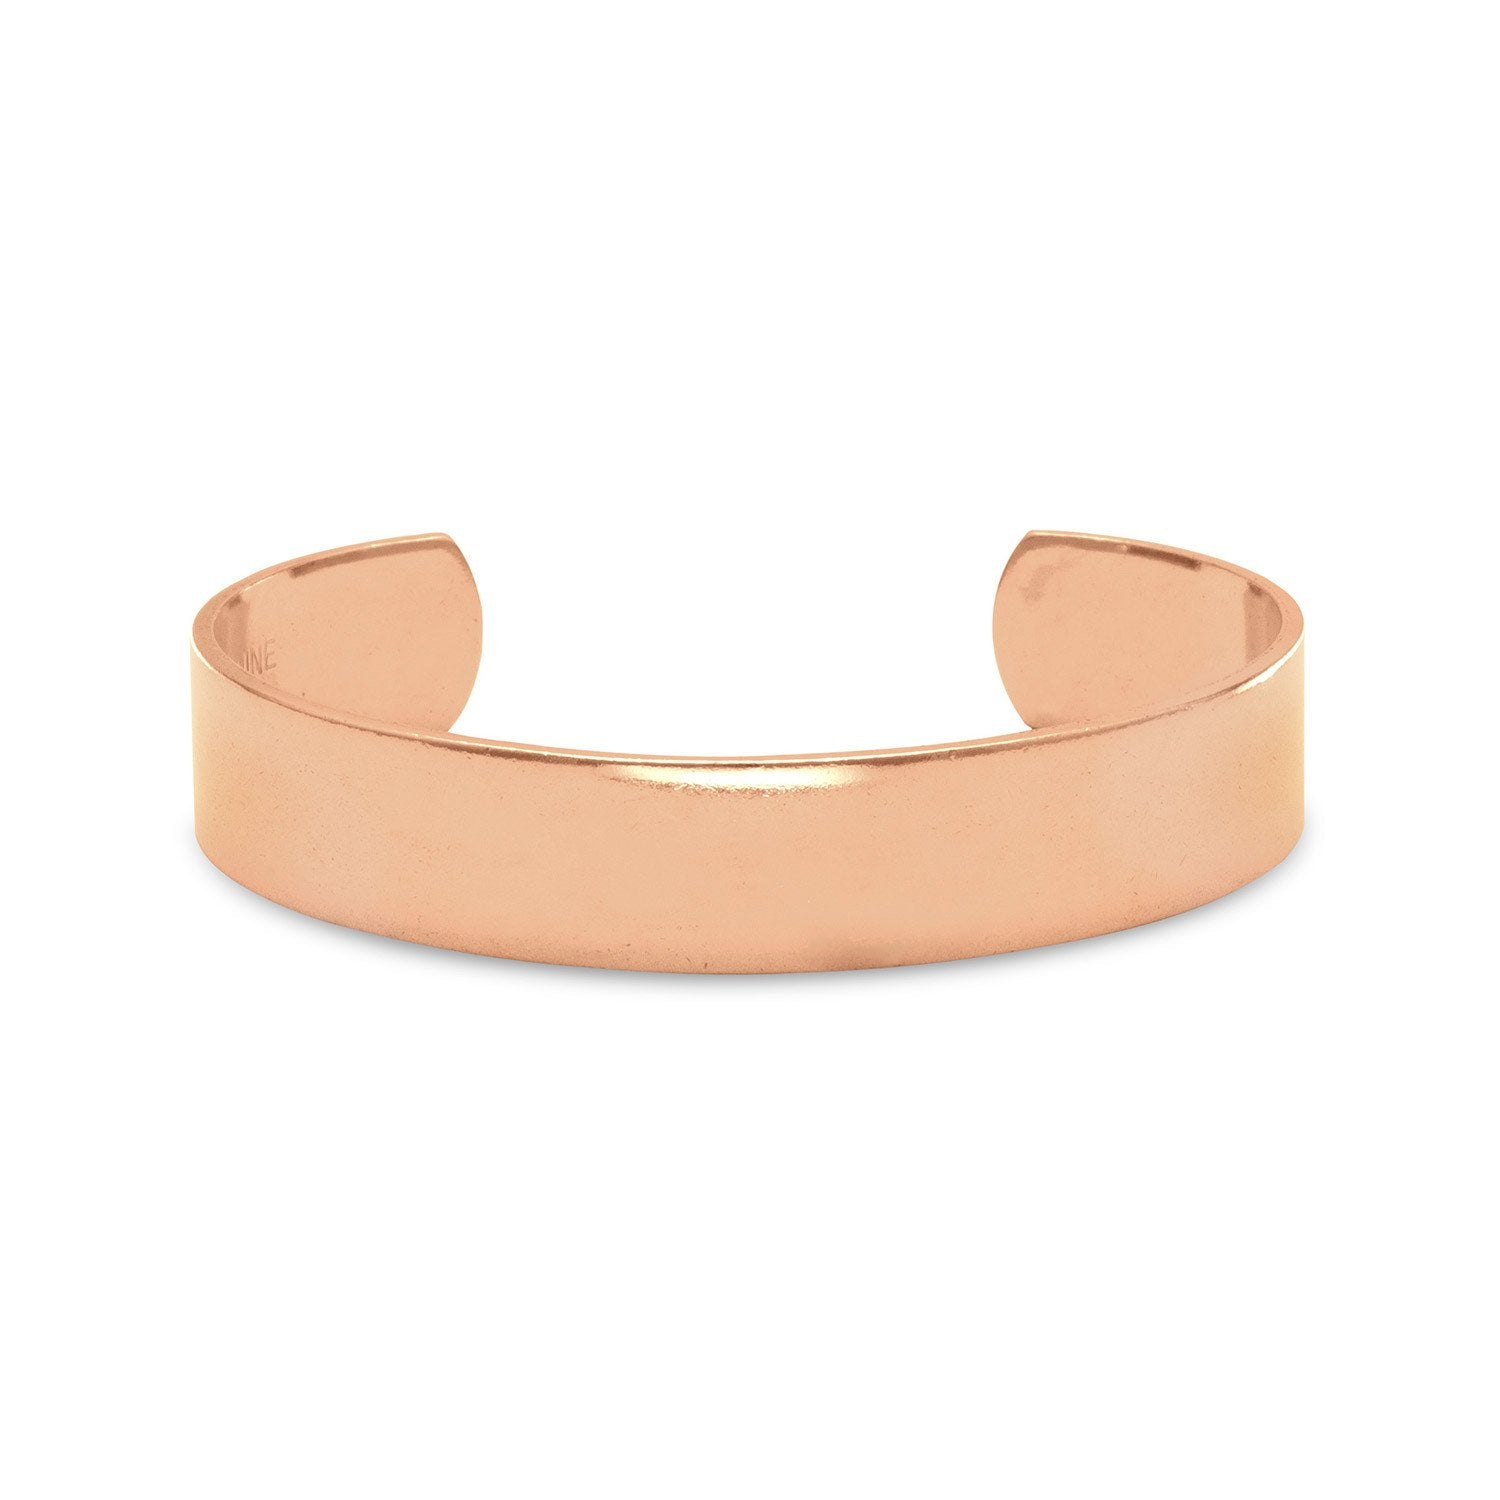 Polished Solid Copper Cuff Bracelet